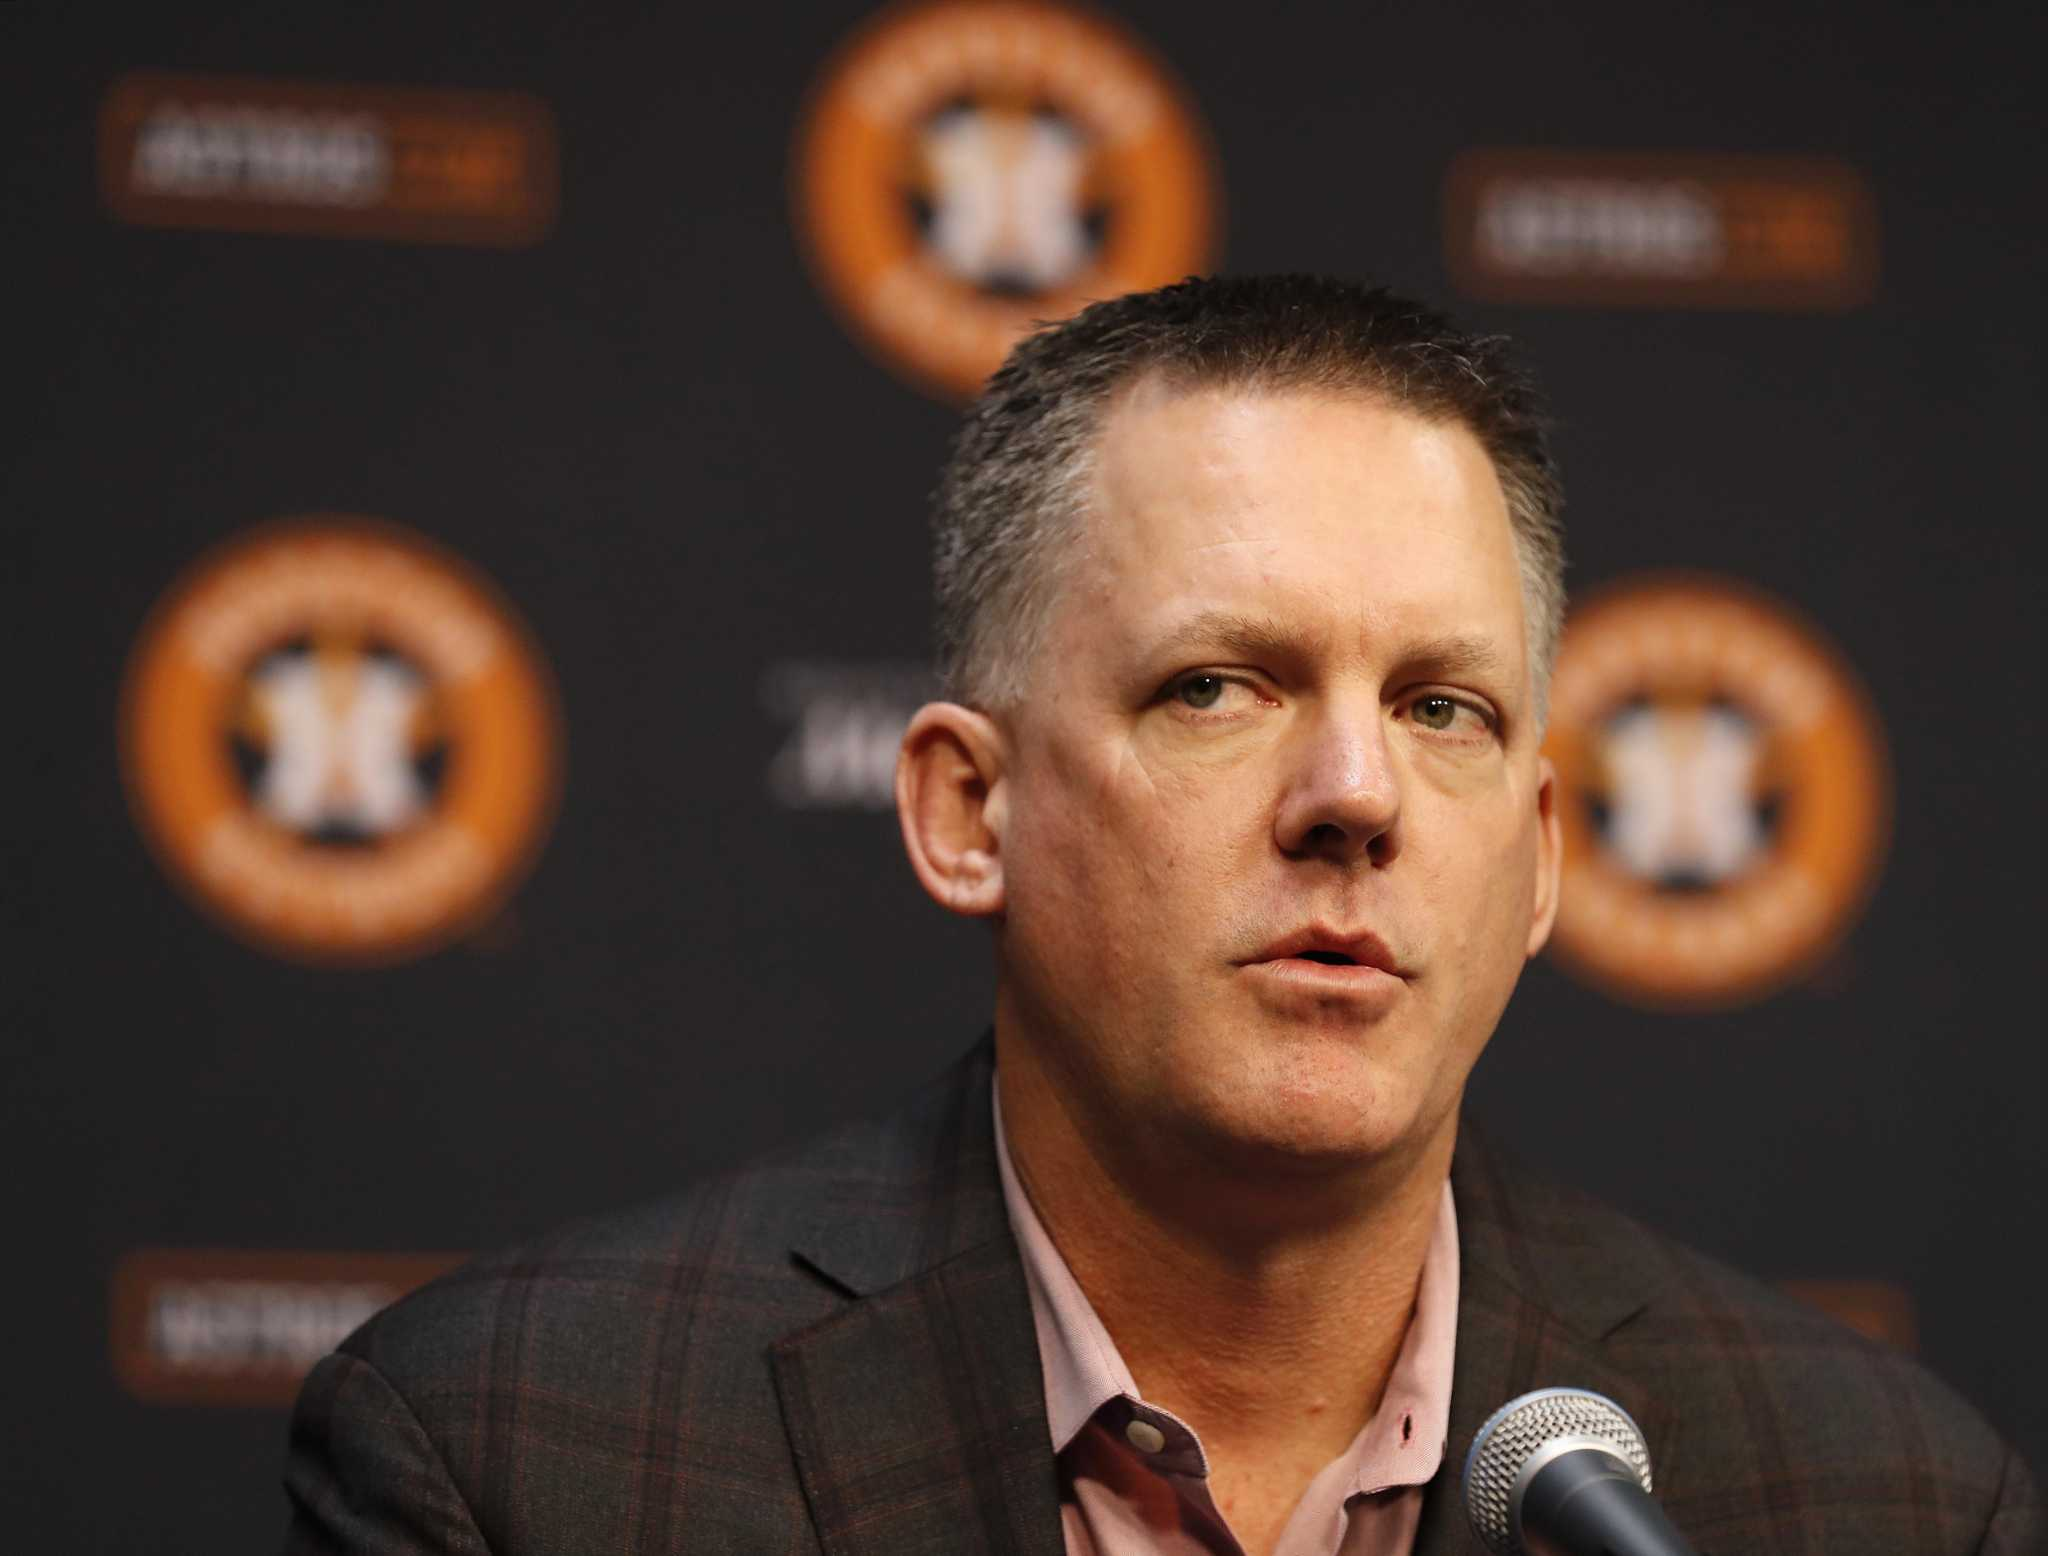 A.J. Hinch: Mourn for now, but appreciate accomplishments